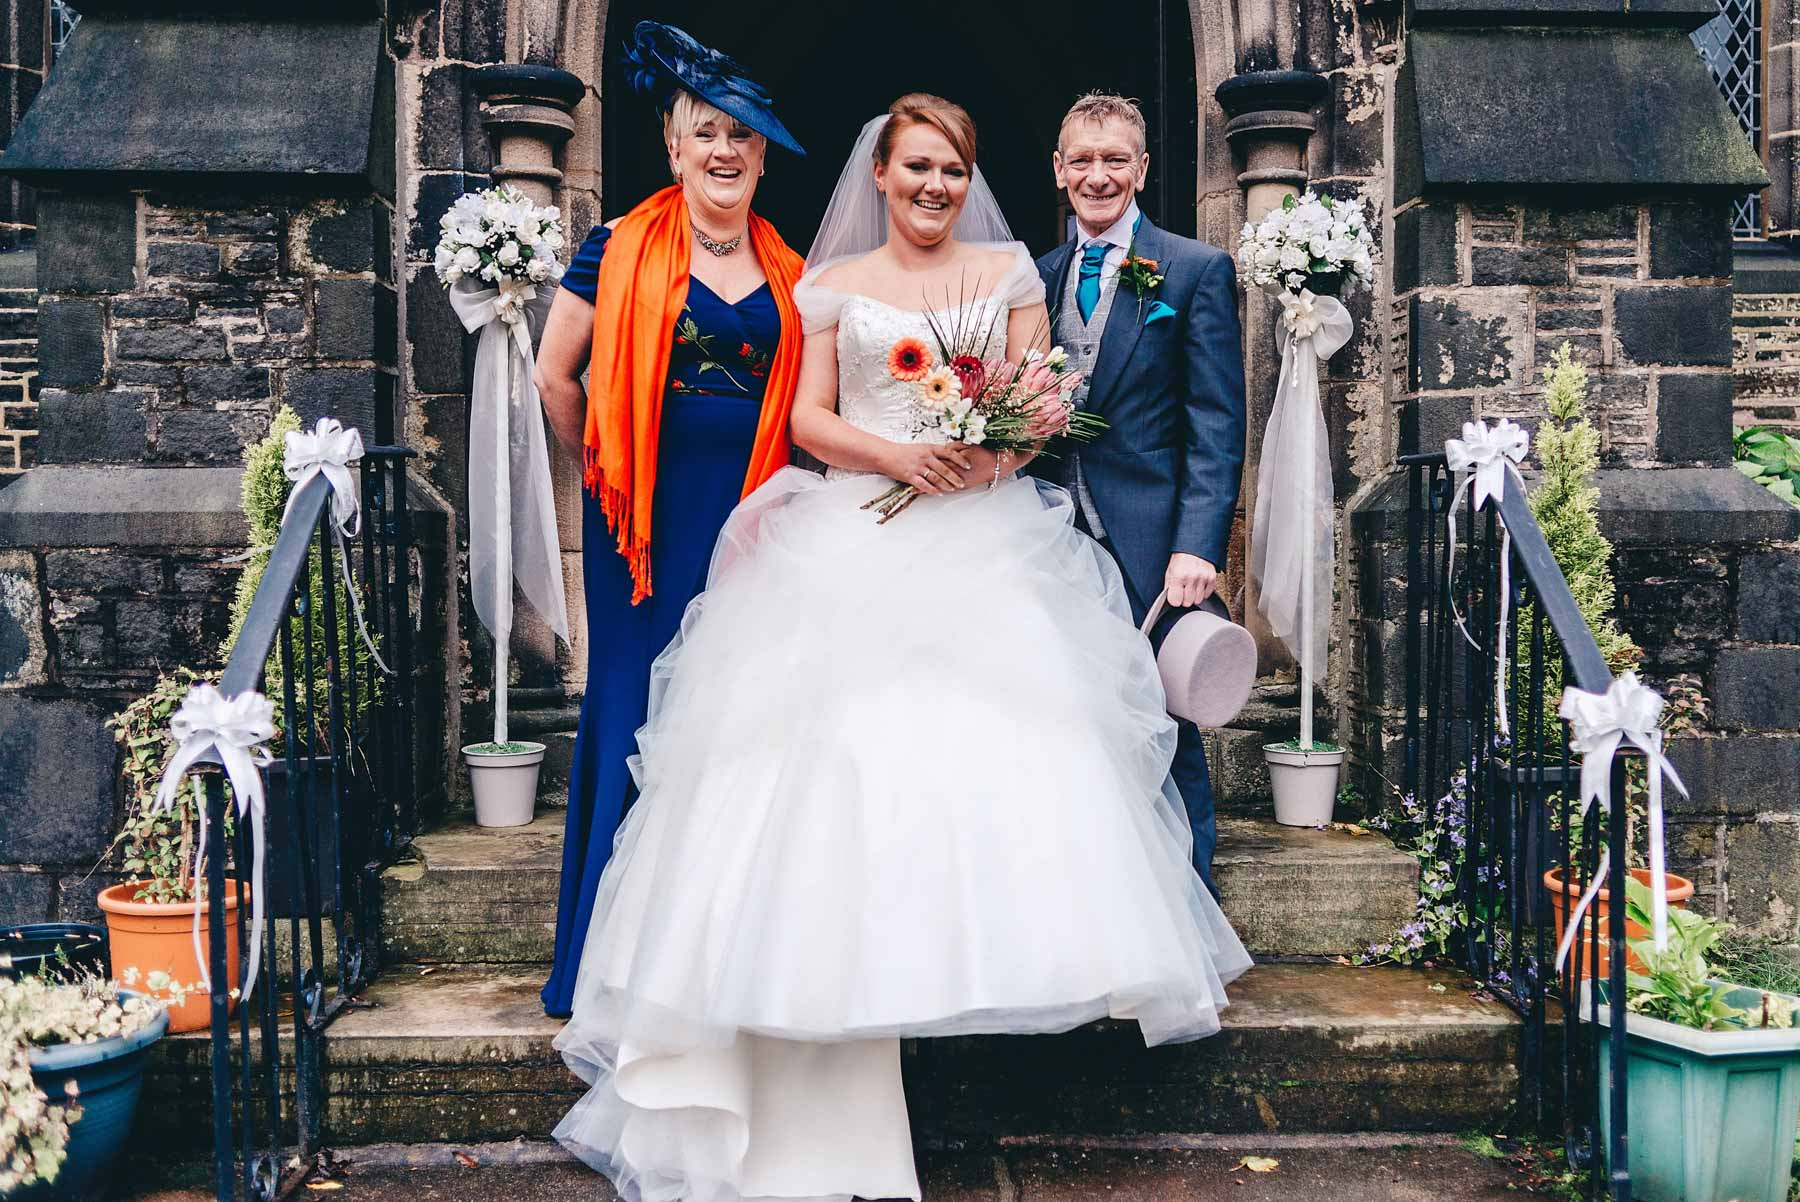 Bridal party on the steps of church